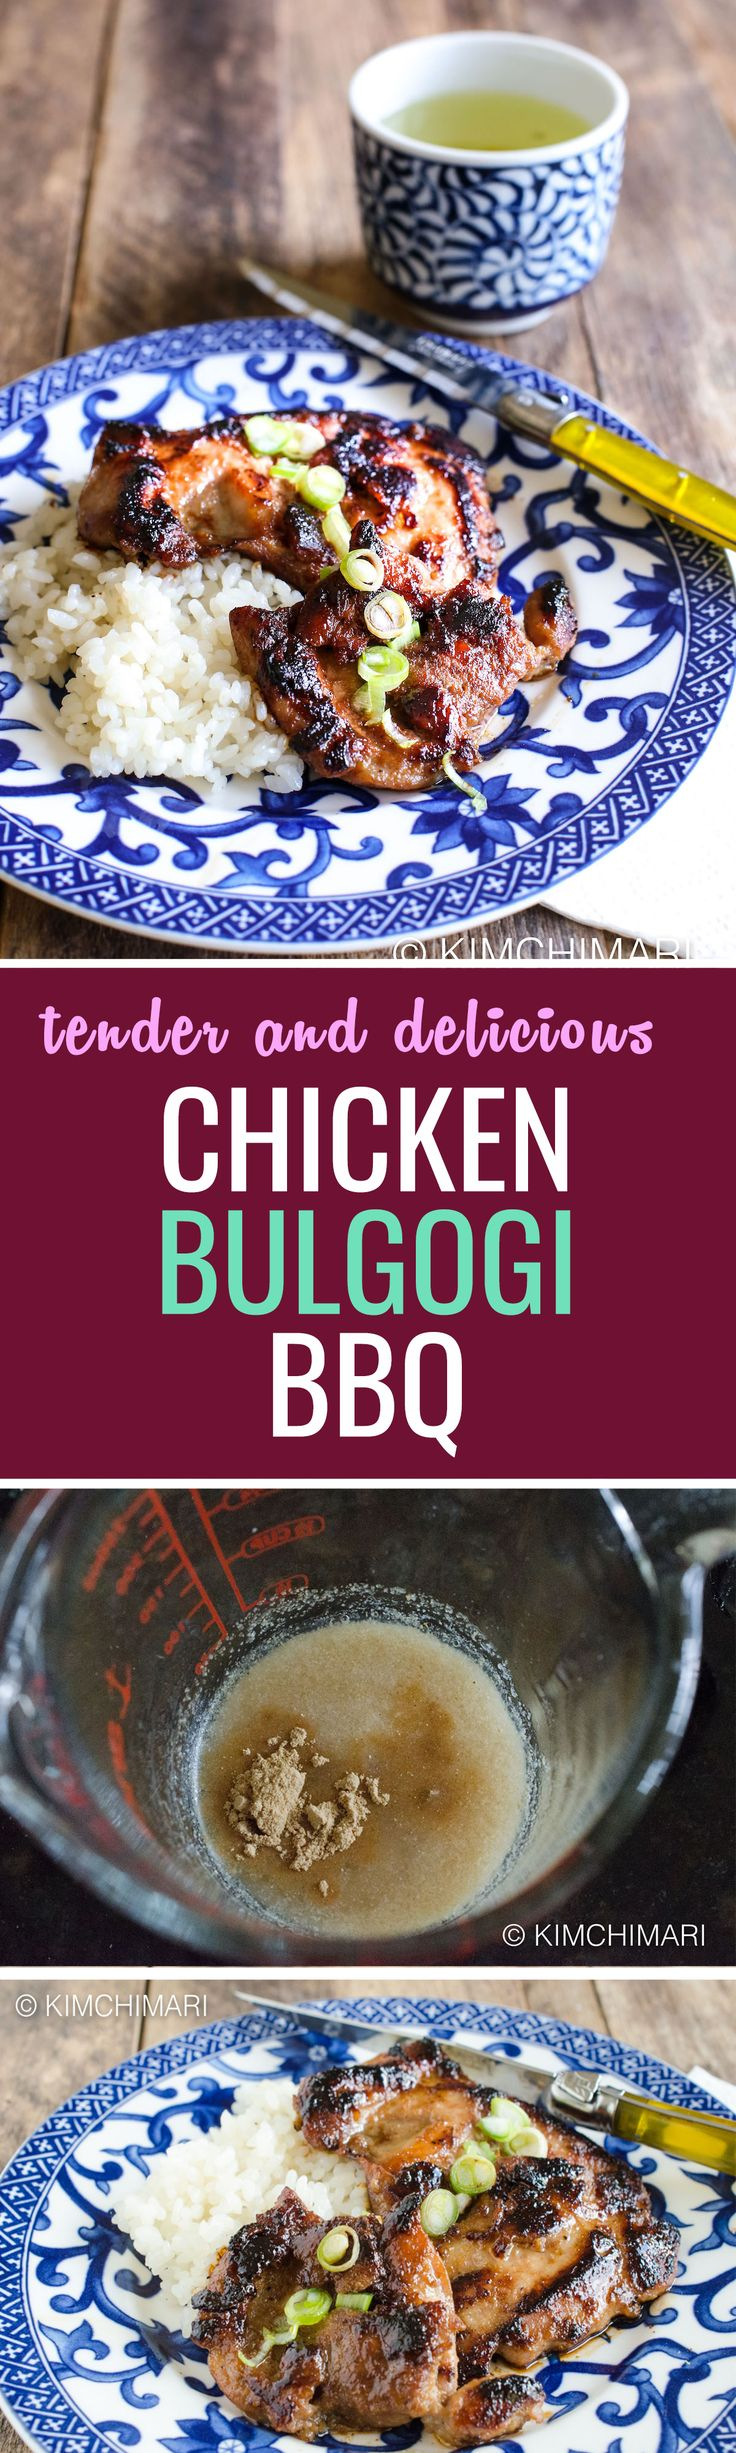 Although bulgogi is traditionally cooked with beef, this chicken bulgogi is an excellent alternative!